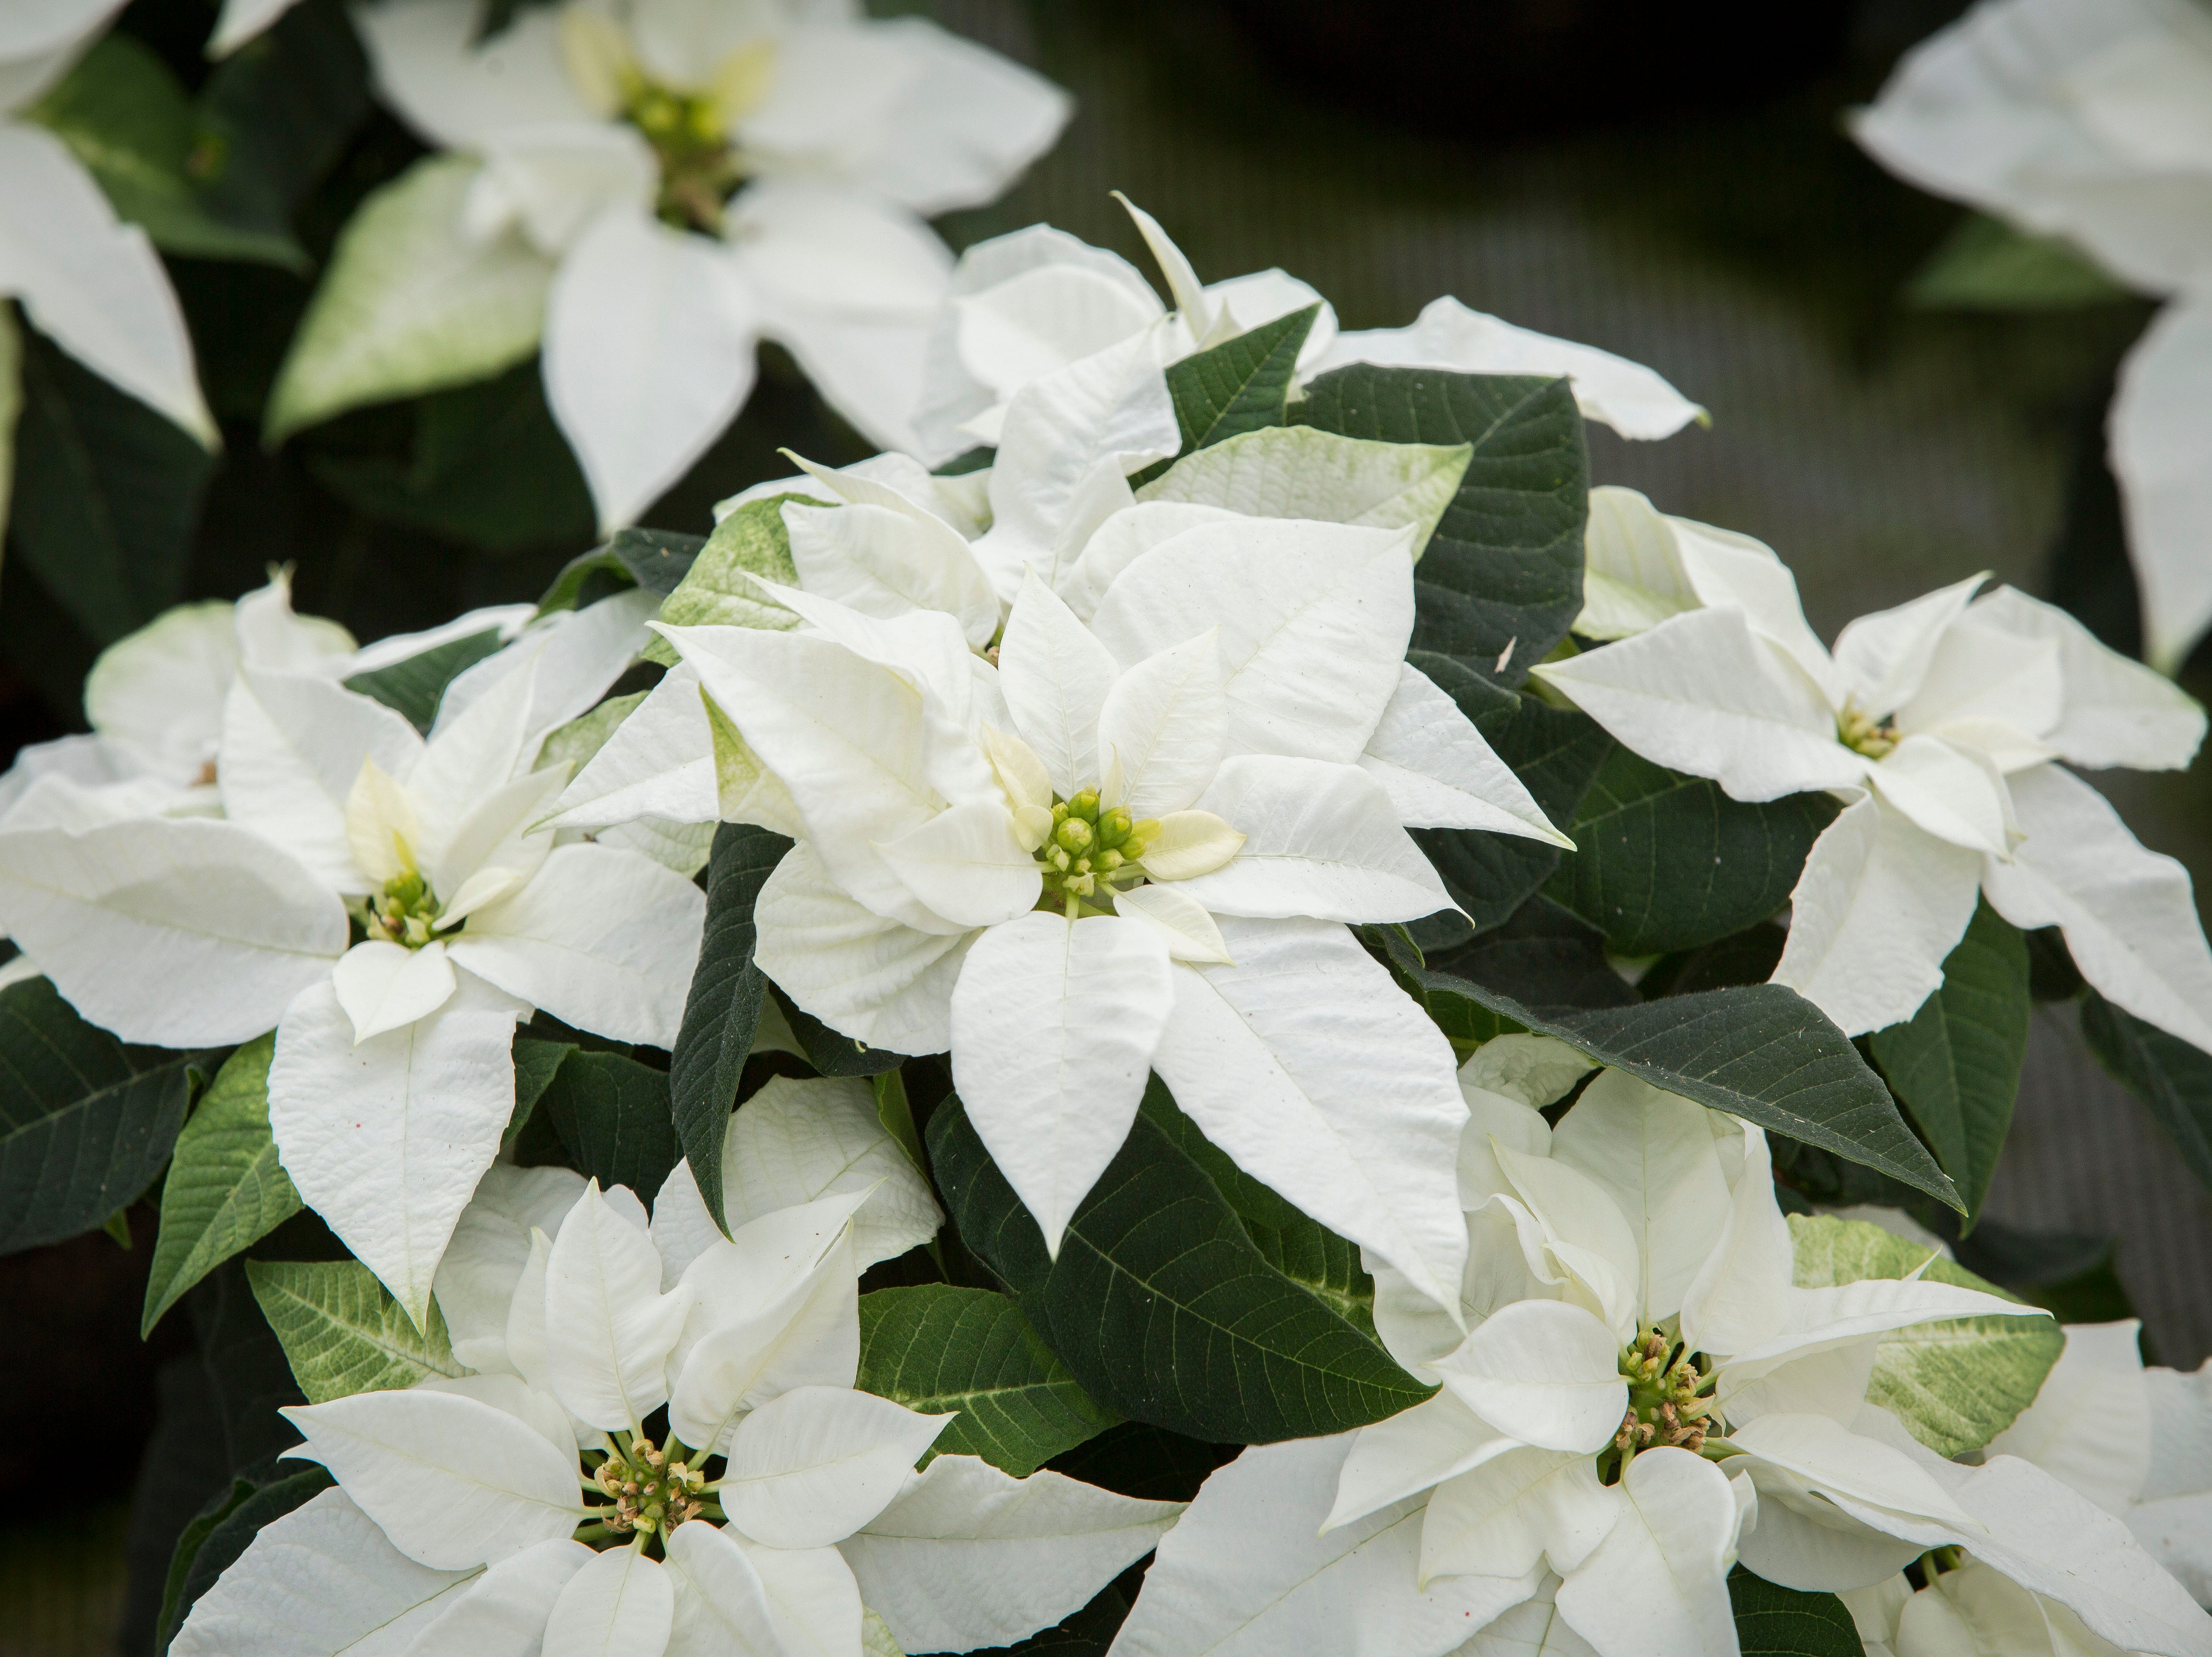 The Princettia White is a hybrid variety of traditional poinsettia plants, popular among millennials, are ready for packaging at Smith Gardens in Aurora, Oregon Friday November, 30, 2018. The plants will be packaged for one of the last shipments of the year in early December and be delivered to local big box stores.